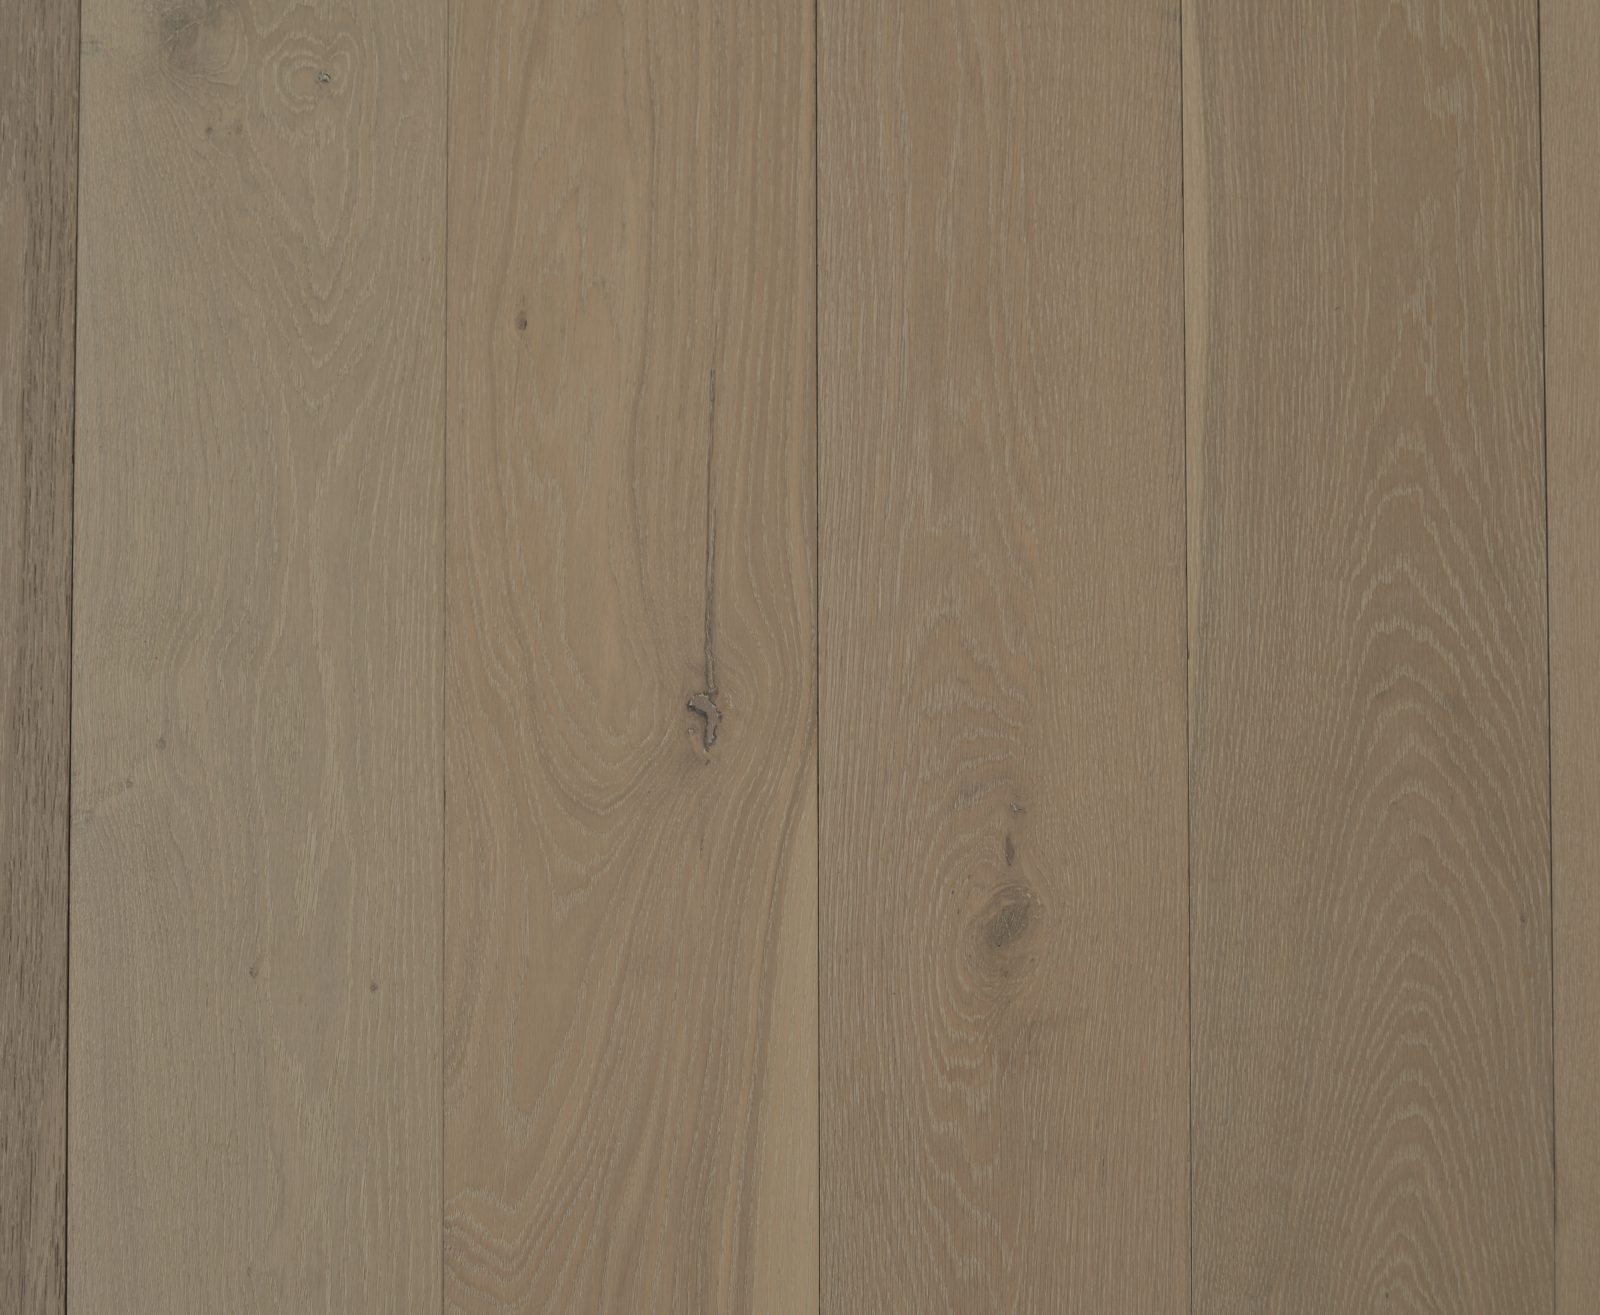 Garrison Collection Fine Hardwood Flooring